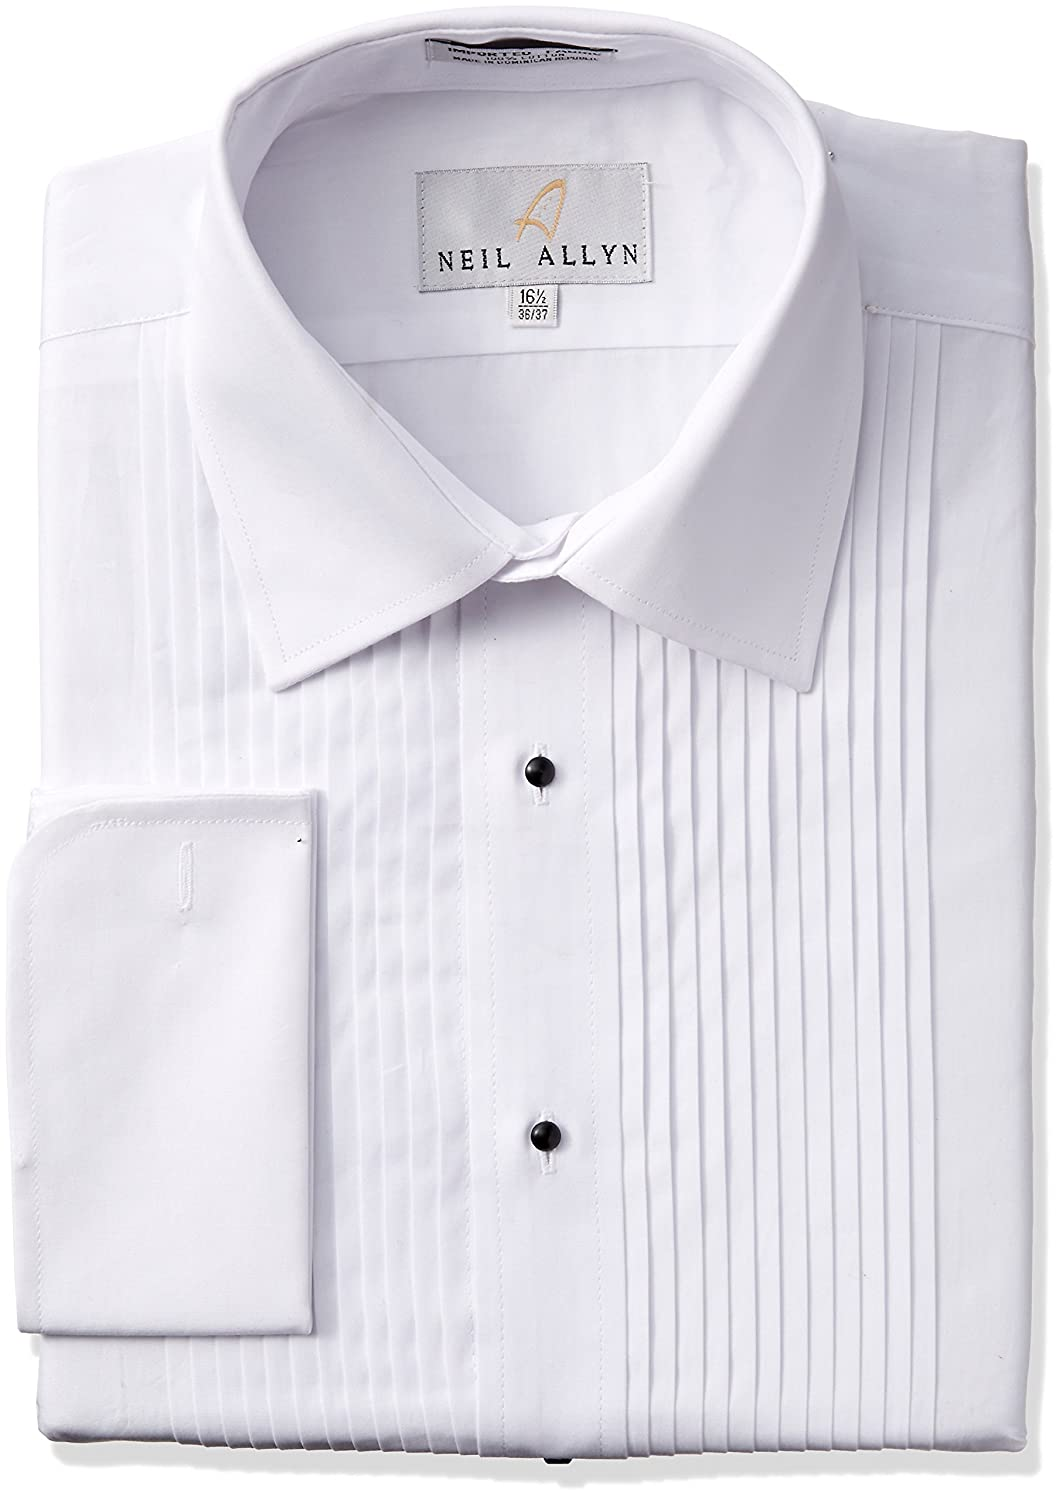 Neil Allyn Tuxedo Shirt 100/% Cotton with Laydown Collar and French Cuffs 951